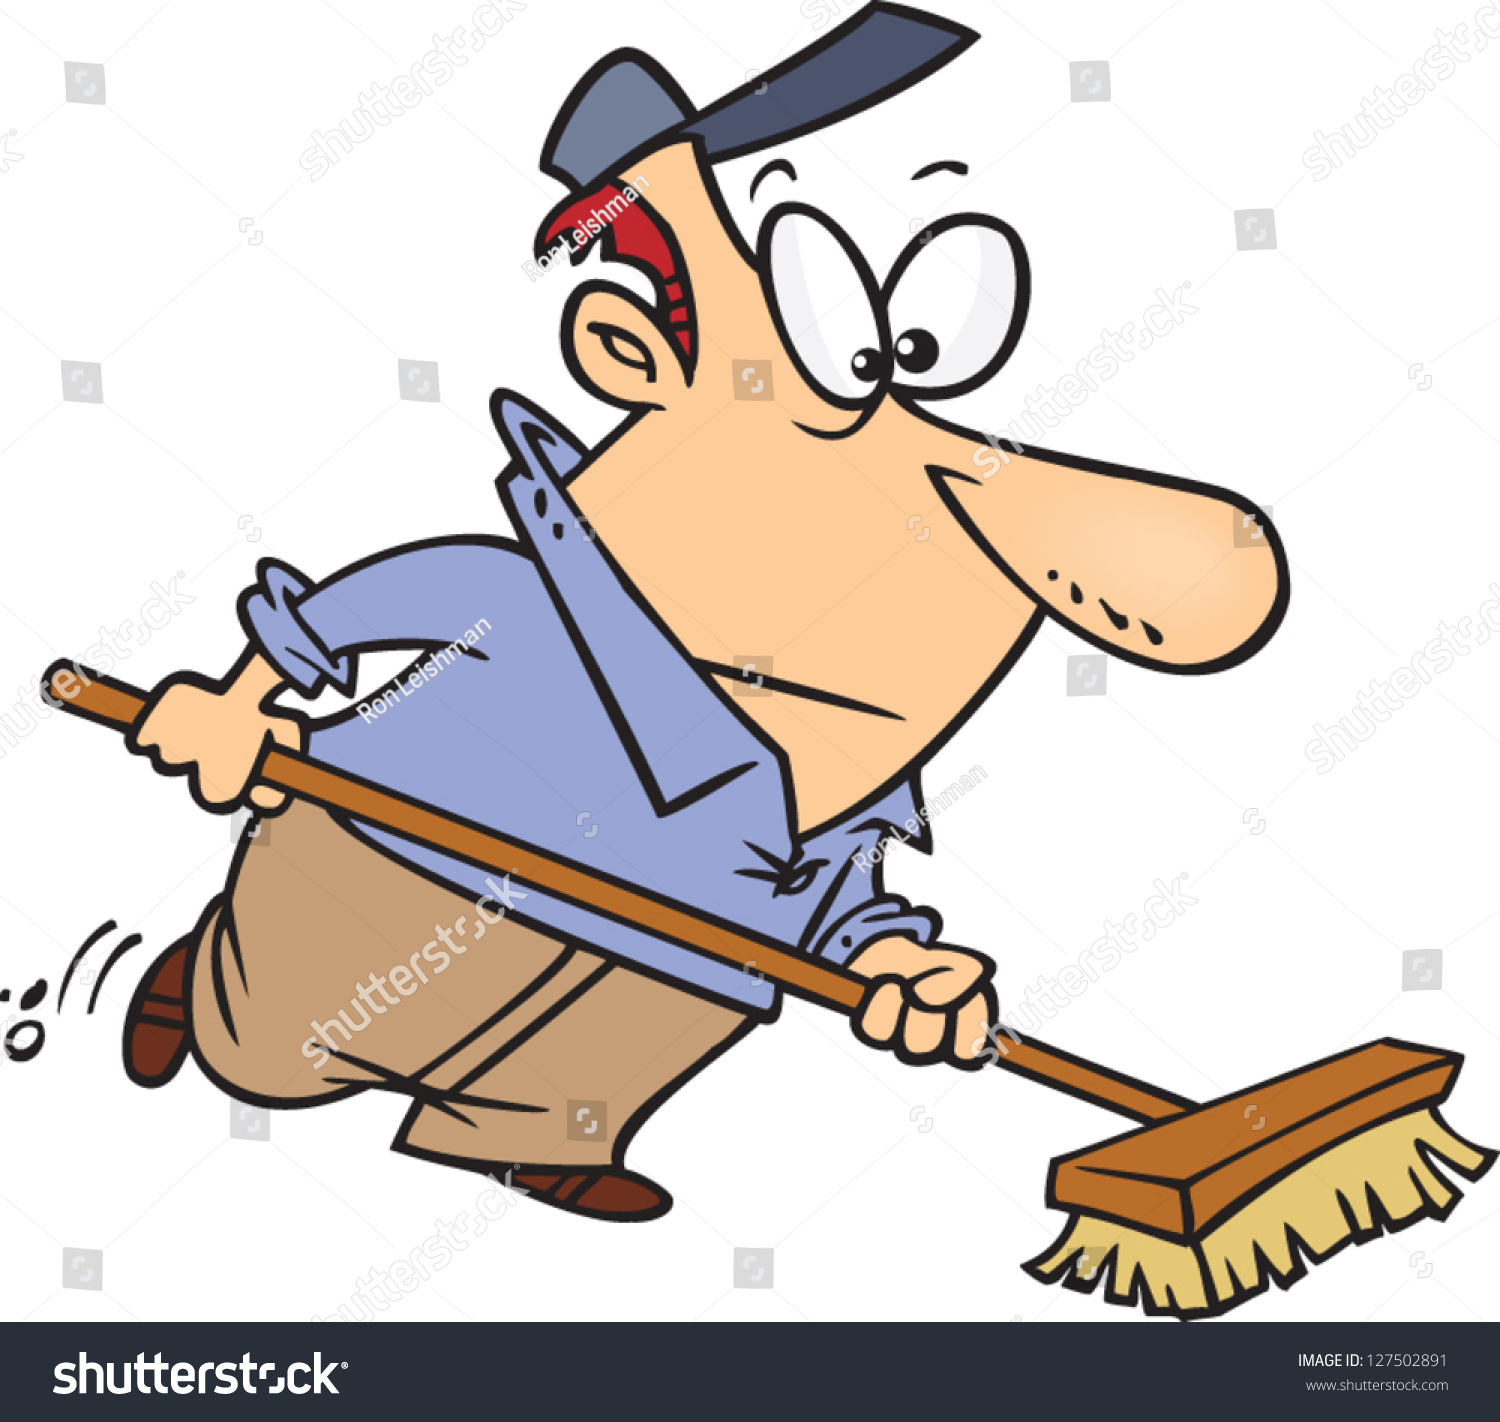 vector illustration cartoon janitor sweeping stock vector janitor clip art free janitorial clip art images